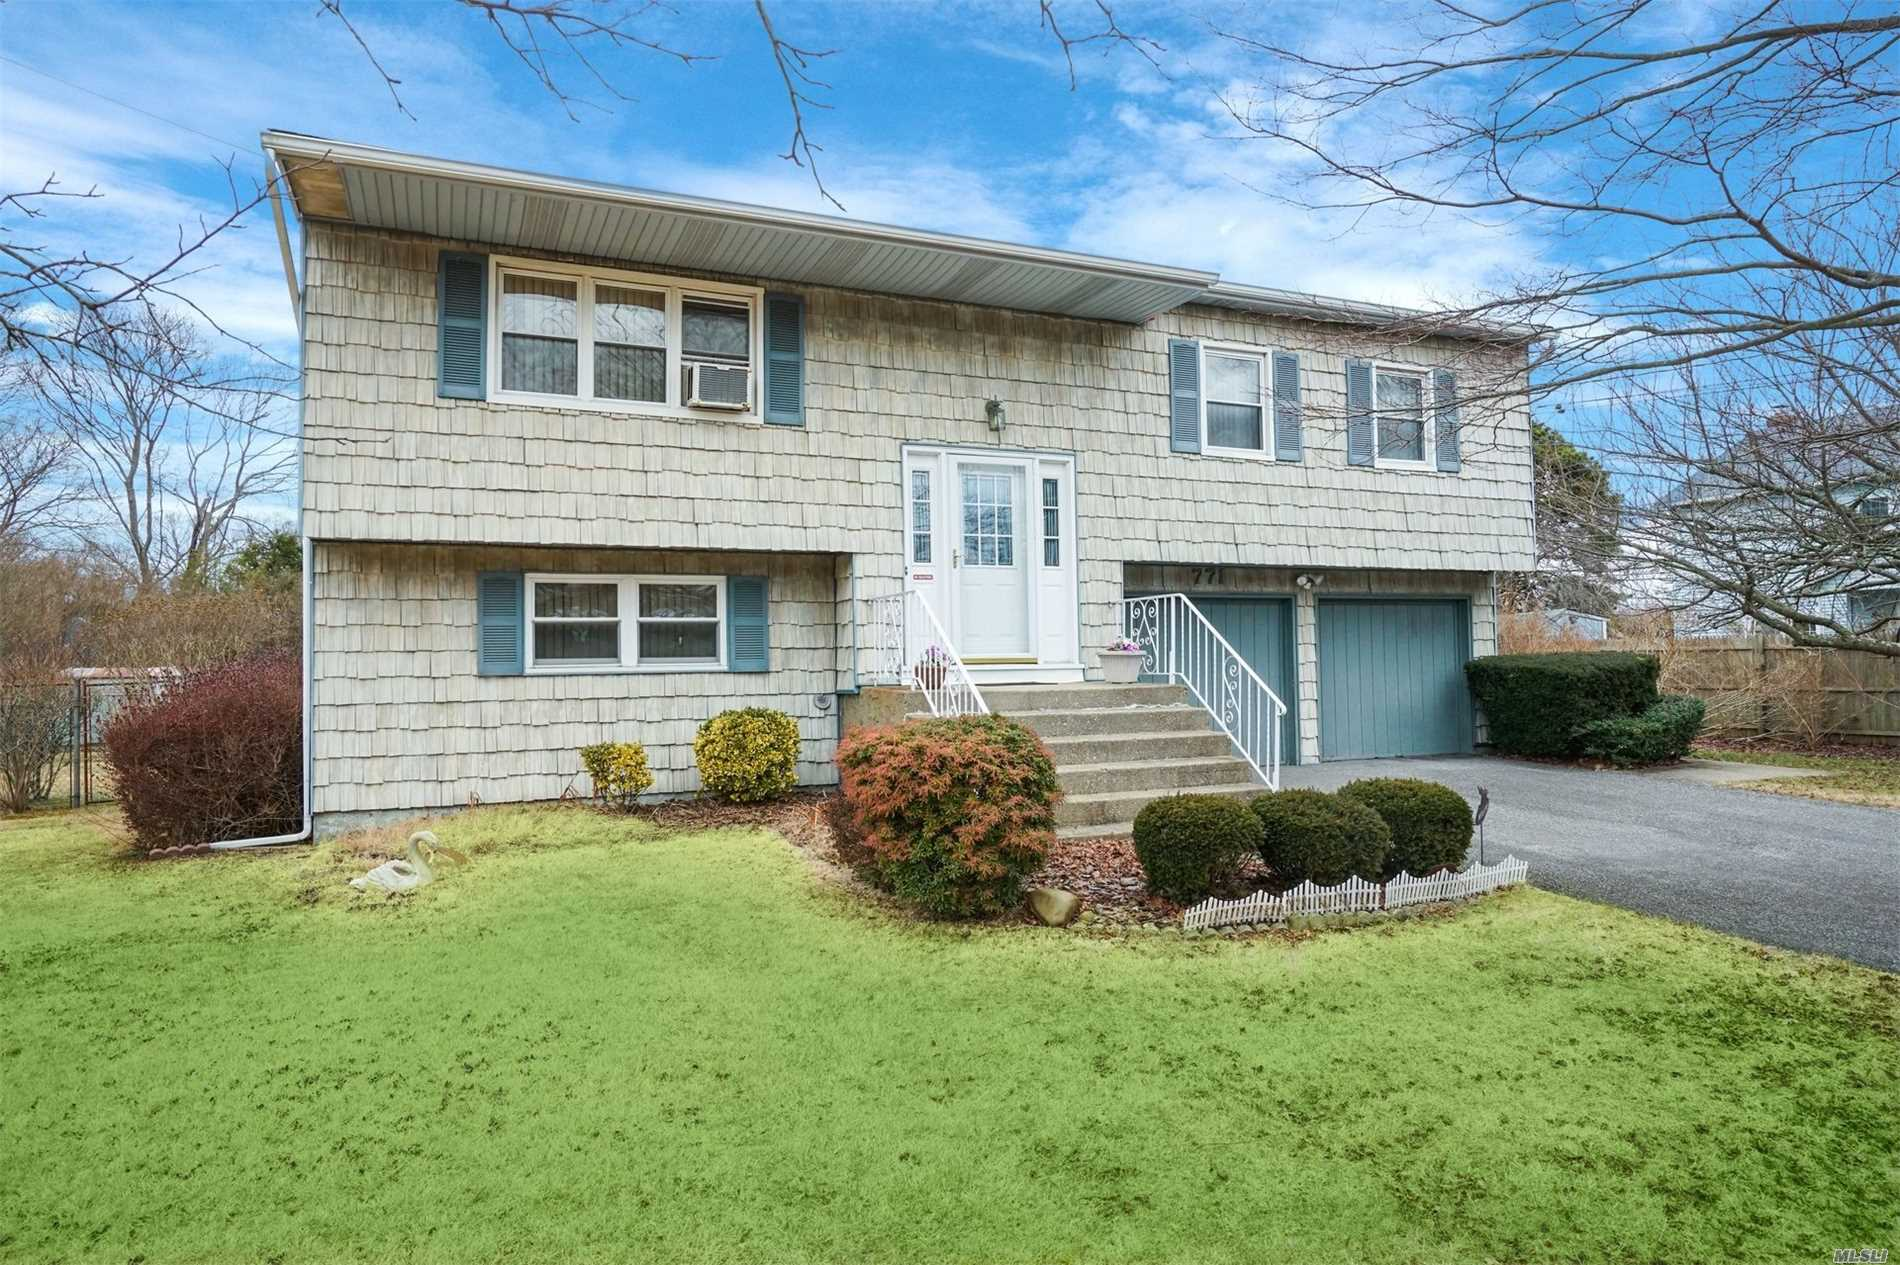 Looking For A Great Yard? Private & Fenced With Mature Landscaping. Light & Bright Home, King Size Mbr With Dual Entry Bath, Hw Flrs Under Rugs, Yng Roof (2011), Cast Iron Boiler/Gas In Street, Vinyl Windows. Lndry Room/Pantry,  Room For Extended Family, Poss M/D W/Proper Permits. Connetquot Sd.. Located Near Shopping, Parks, Library And Easy Access To Hwys. Enjoy Hiking, Biking Or Horseback Riding At Nearby Connetquot St Park Awaits Your Personal Touch!